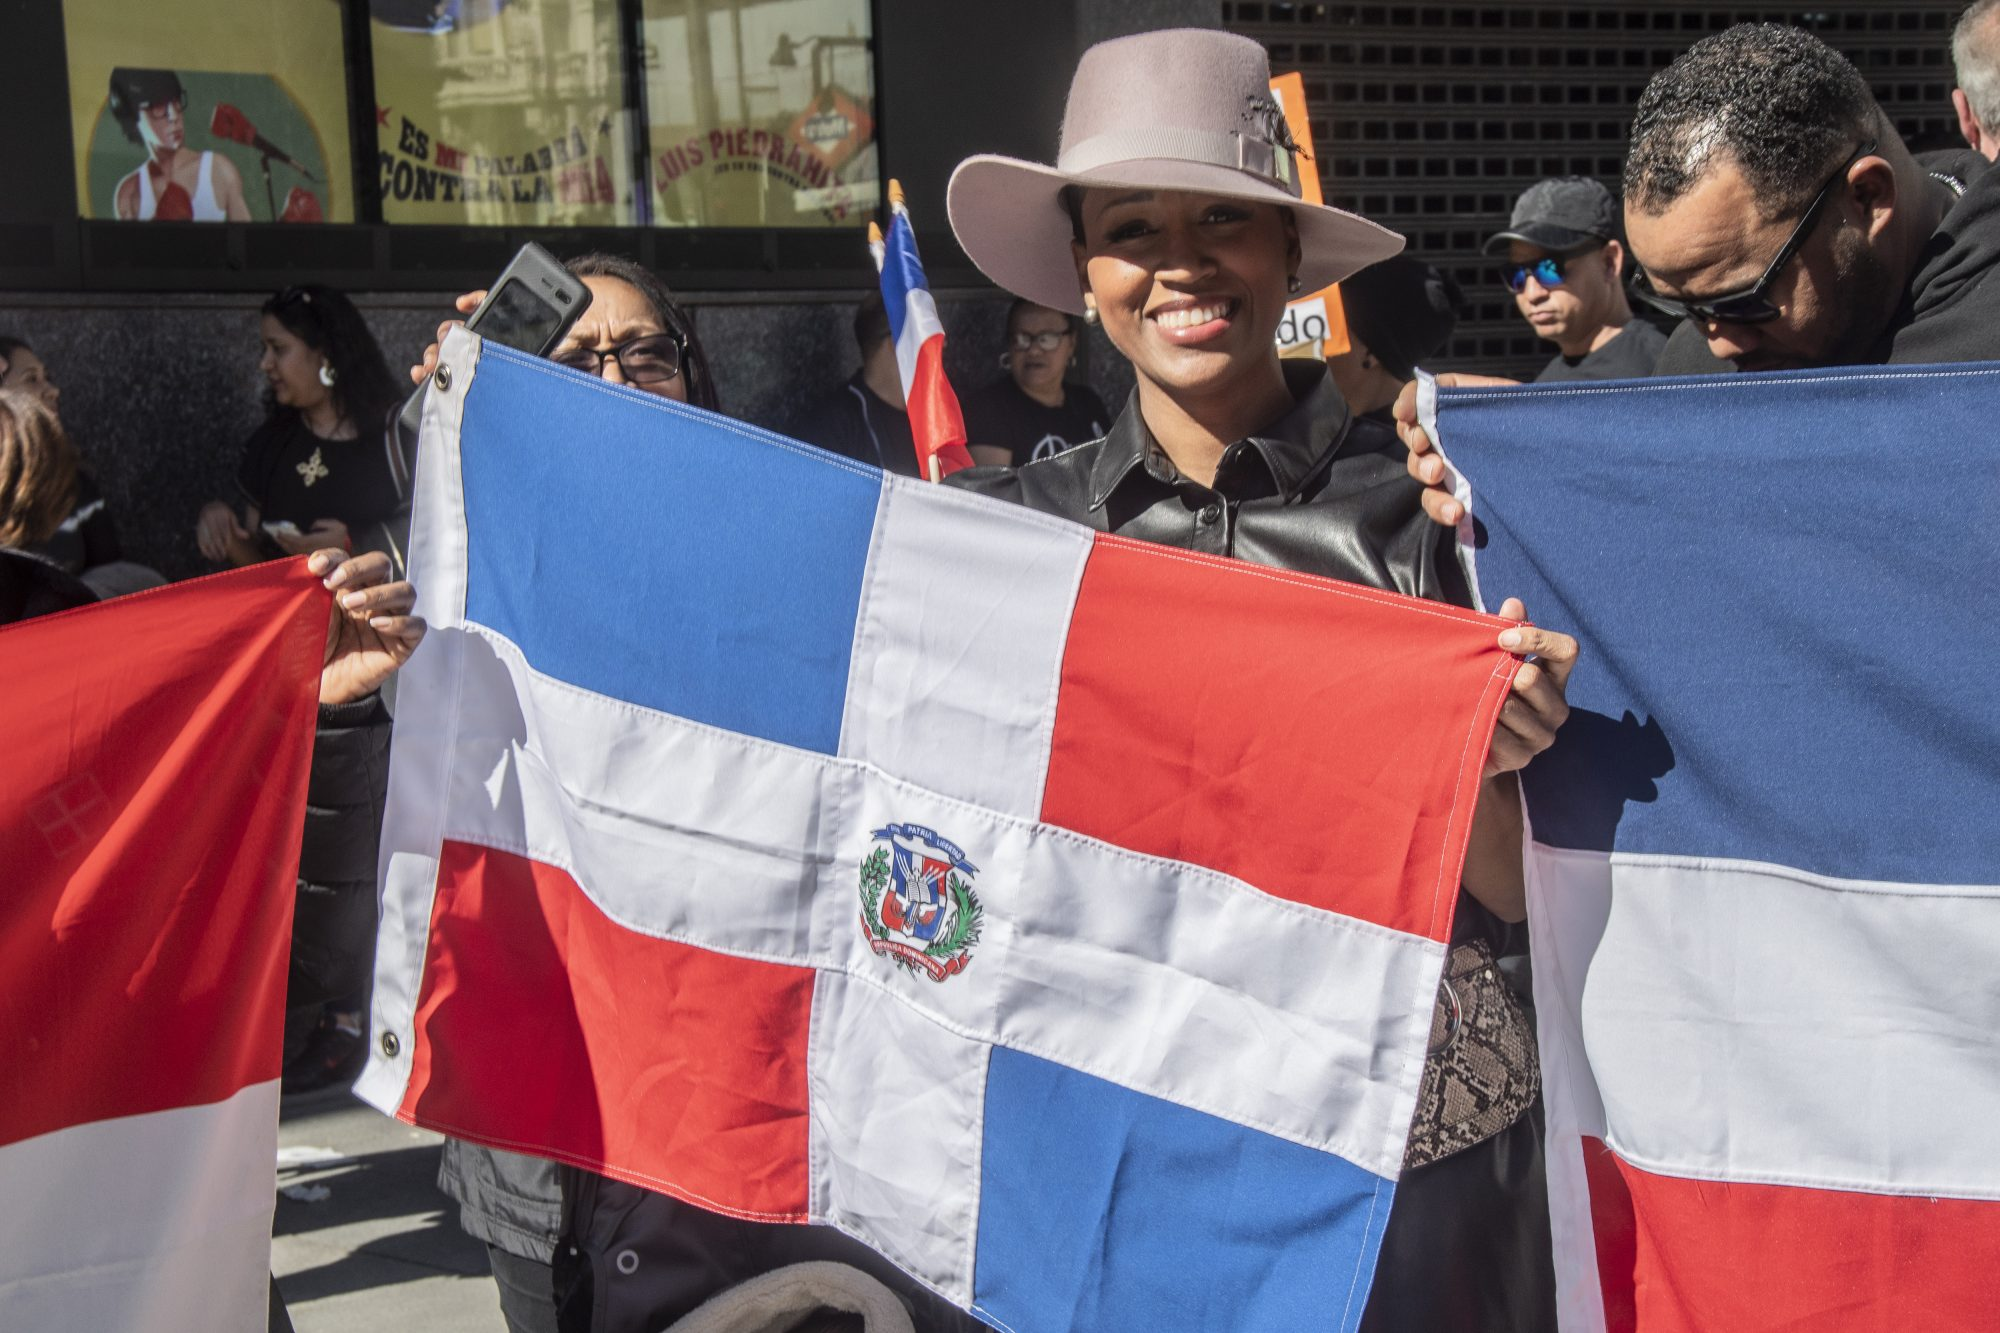 Hundreds of citizens of the Dominican Republic demonstrated